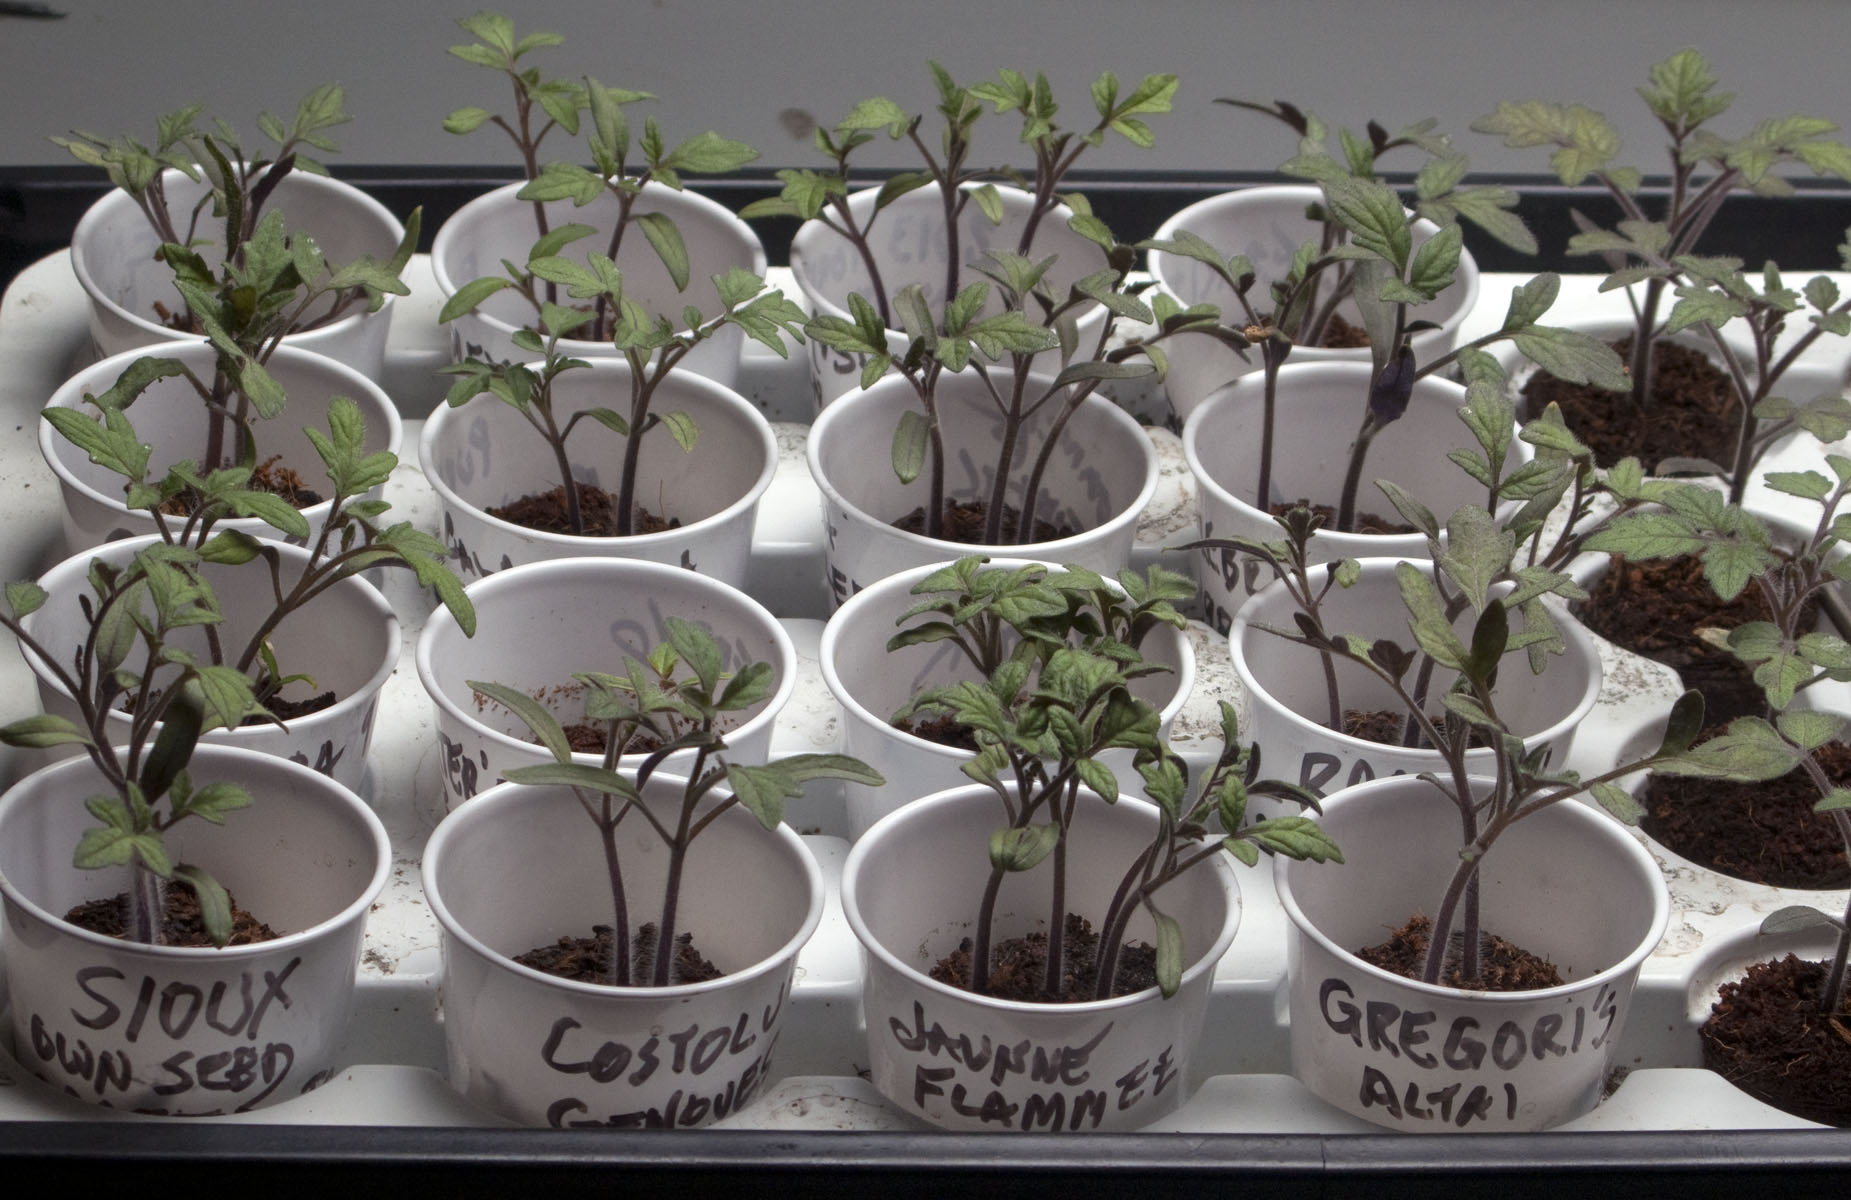 Harry Cabluck S Tips For Growing Healthy Tomato Transplants